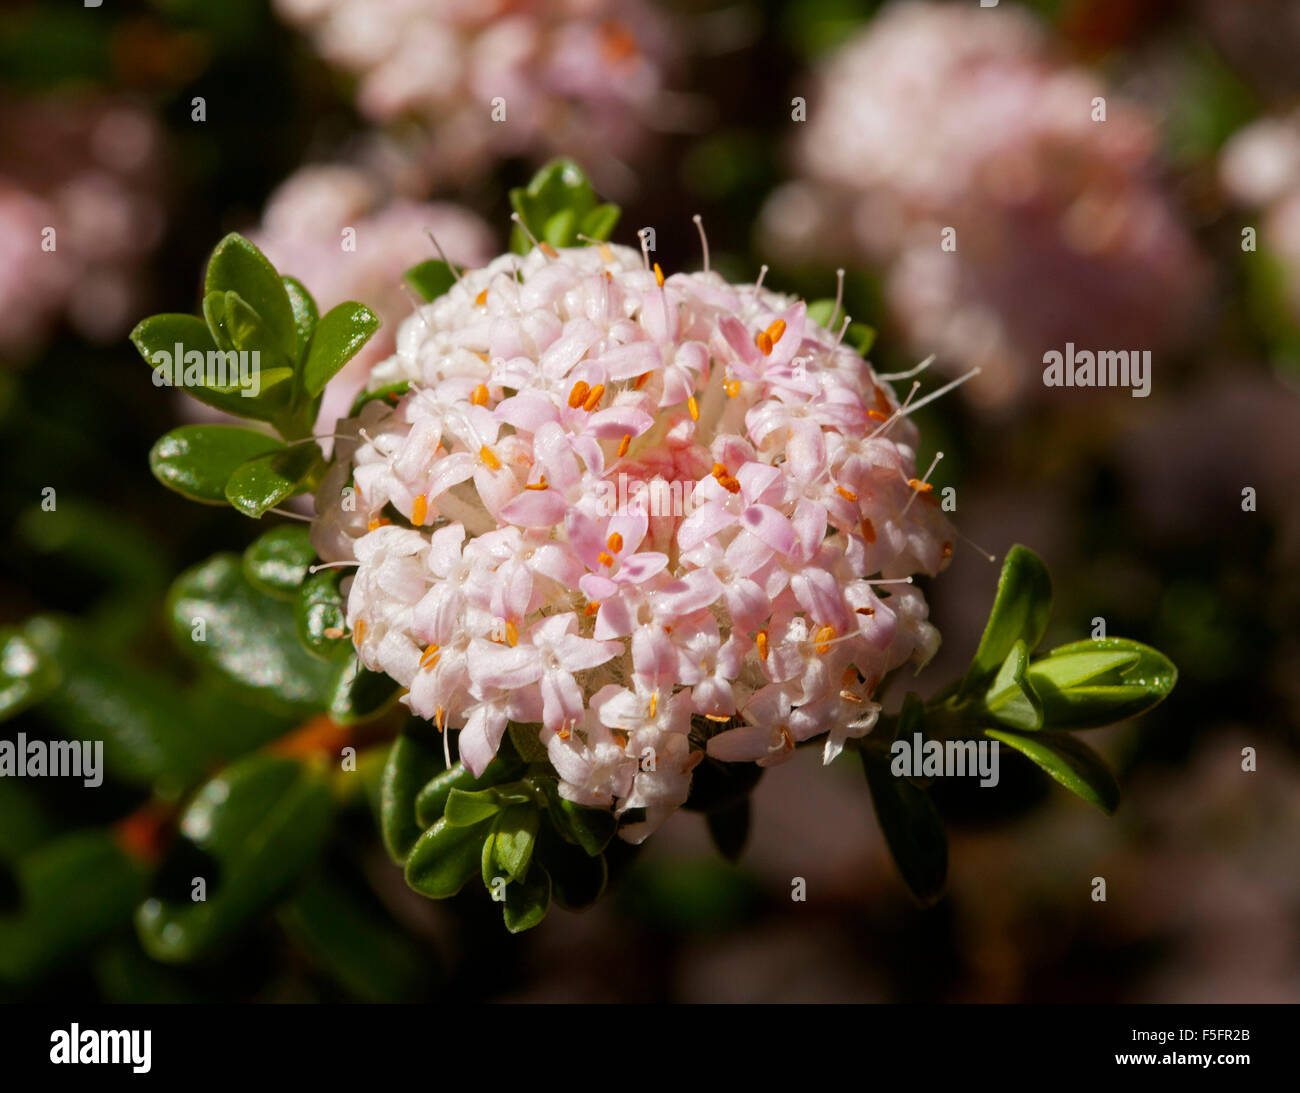 Cluster Of Small Pale Pink Flowers Of Australian Native Shrub